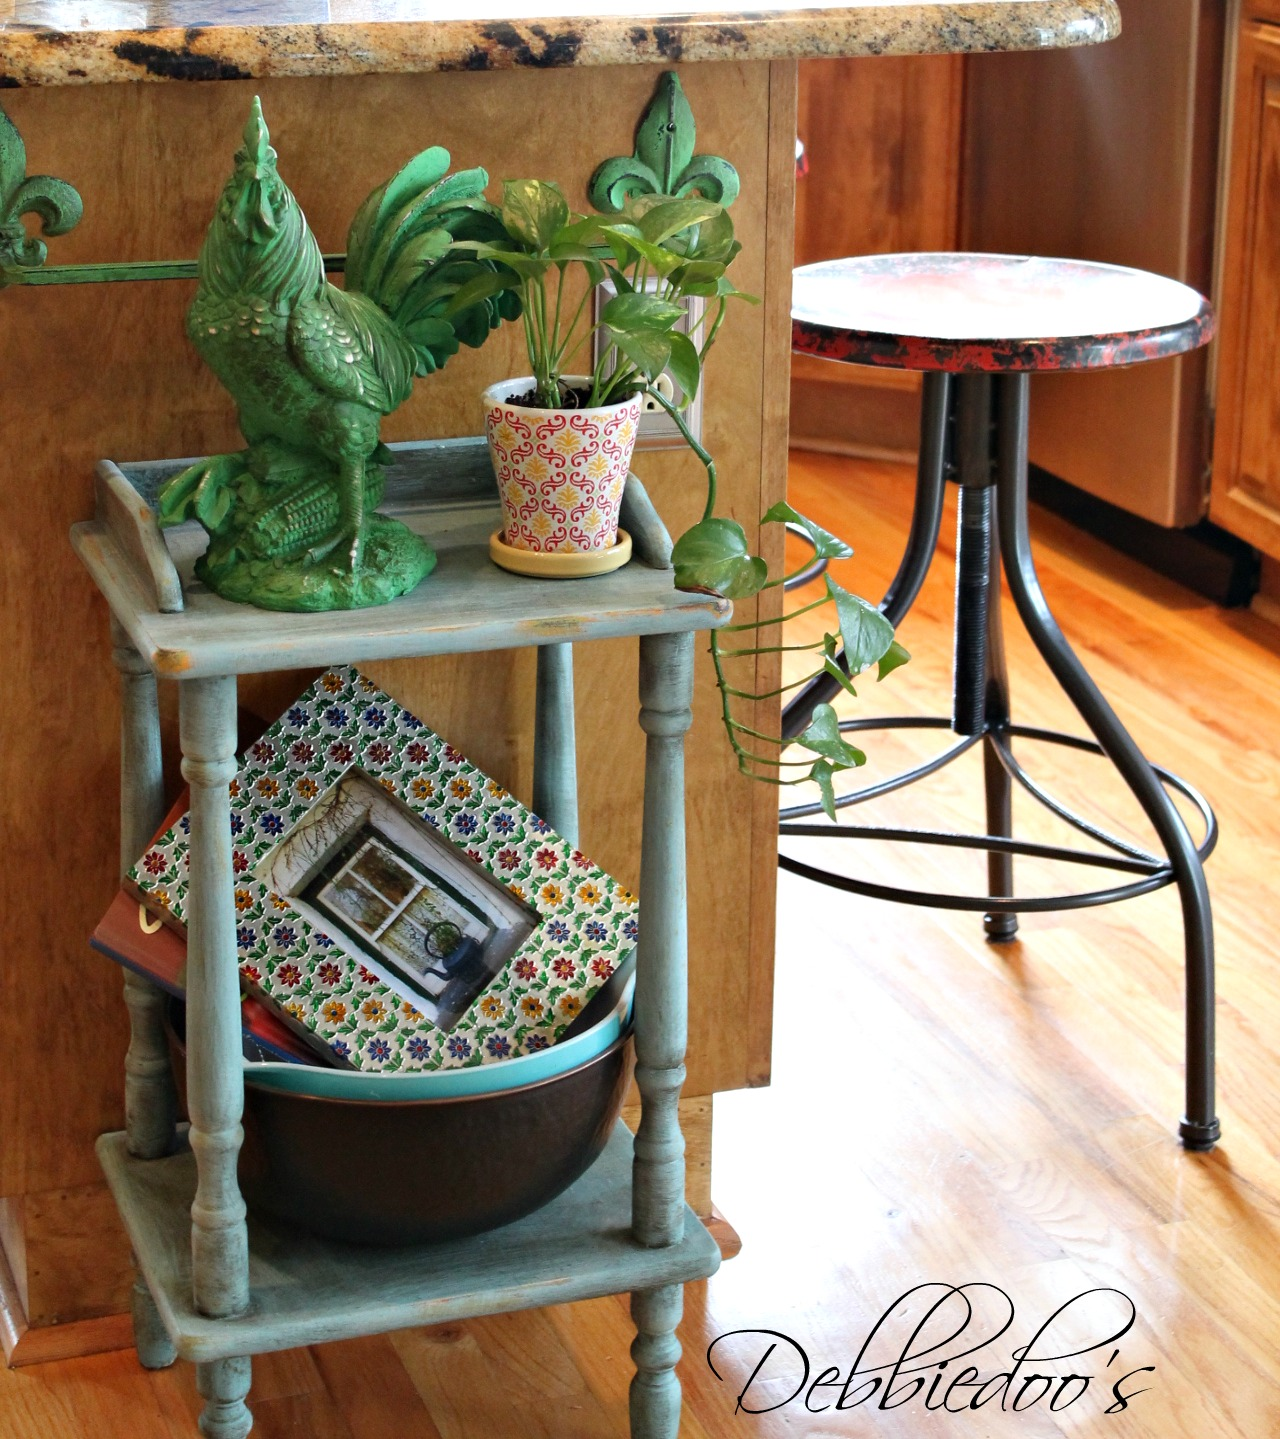 Country Kitchen Stools: French Country Kitchen Style Freshened Up